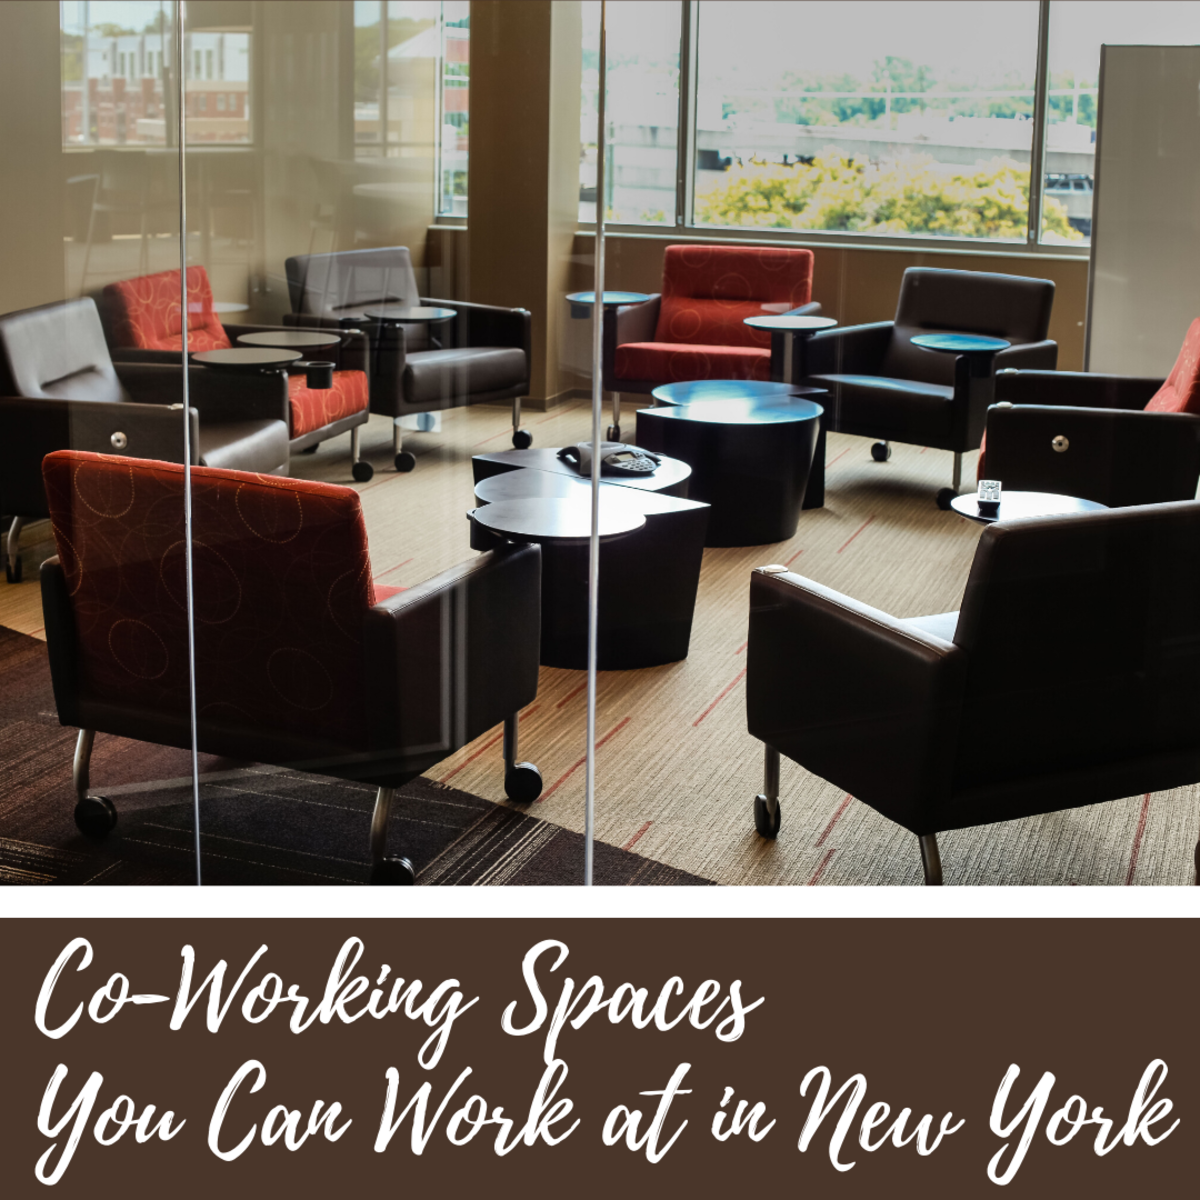 7 Co-Working Spaces You Can Work at in New York